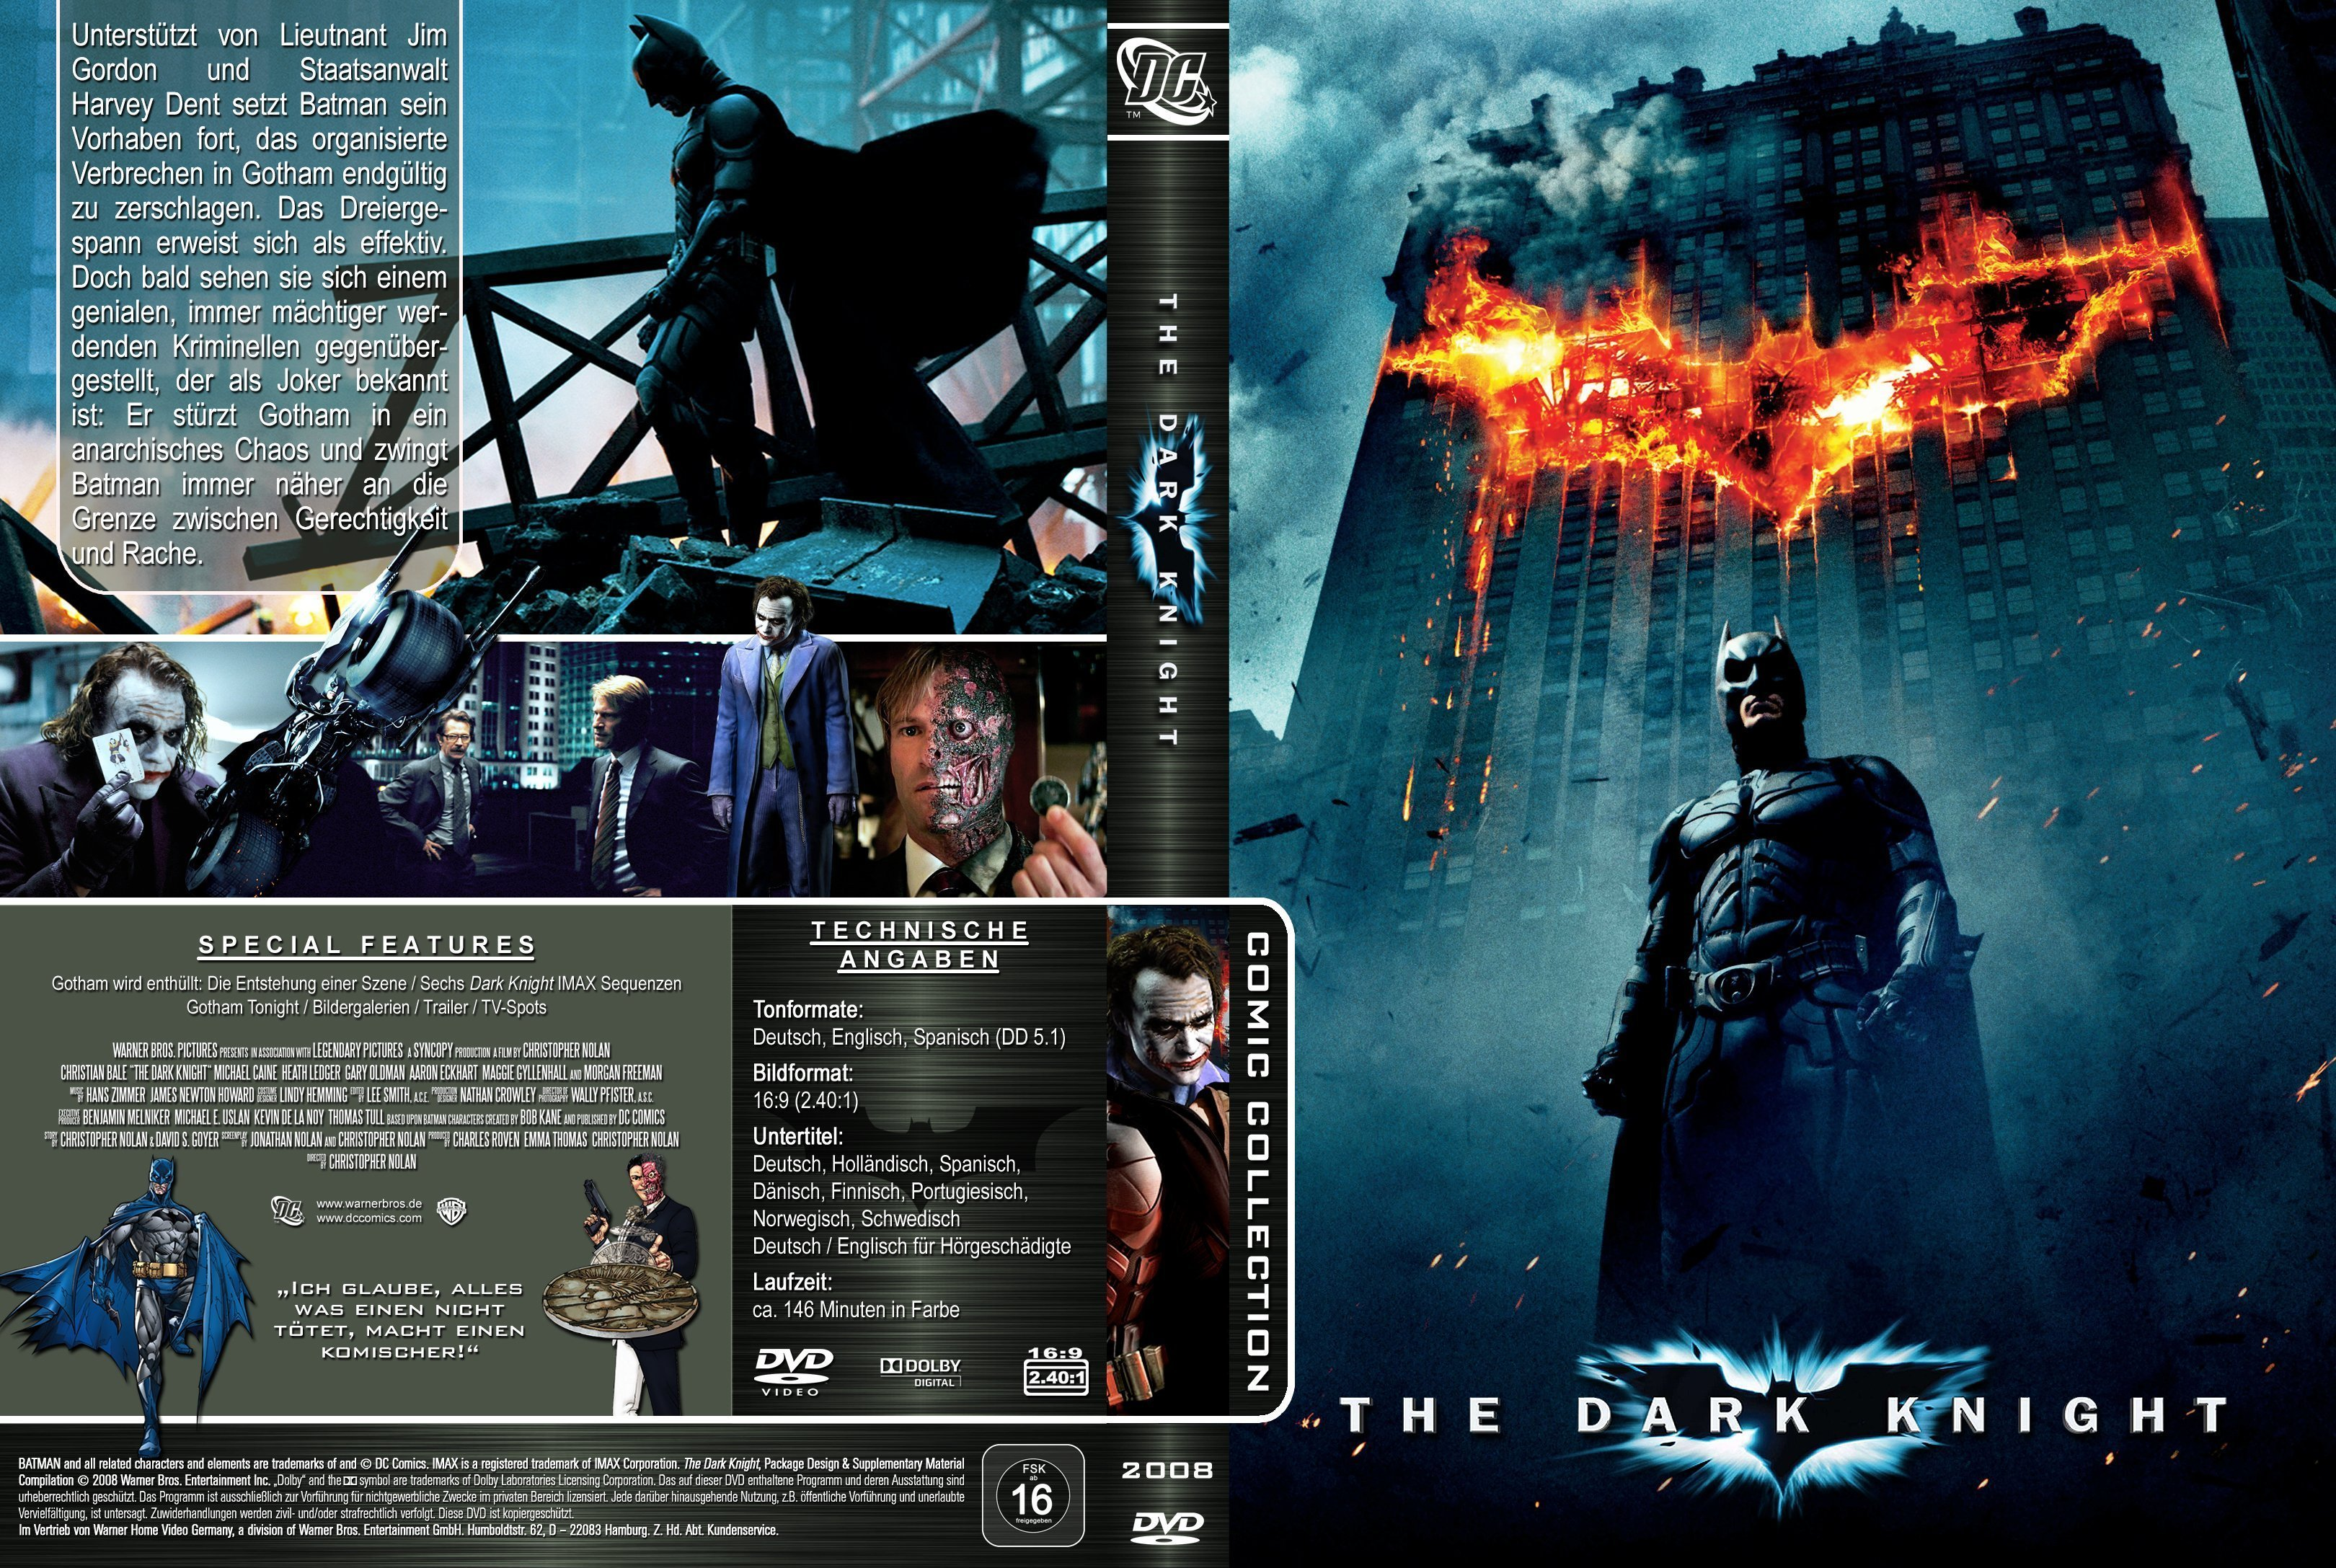 The Dark Knight 2008 R2 German Cover Dvd Covers And Labels